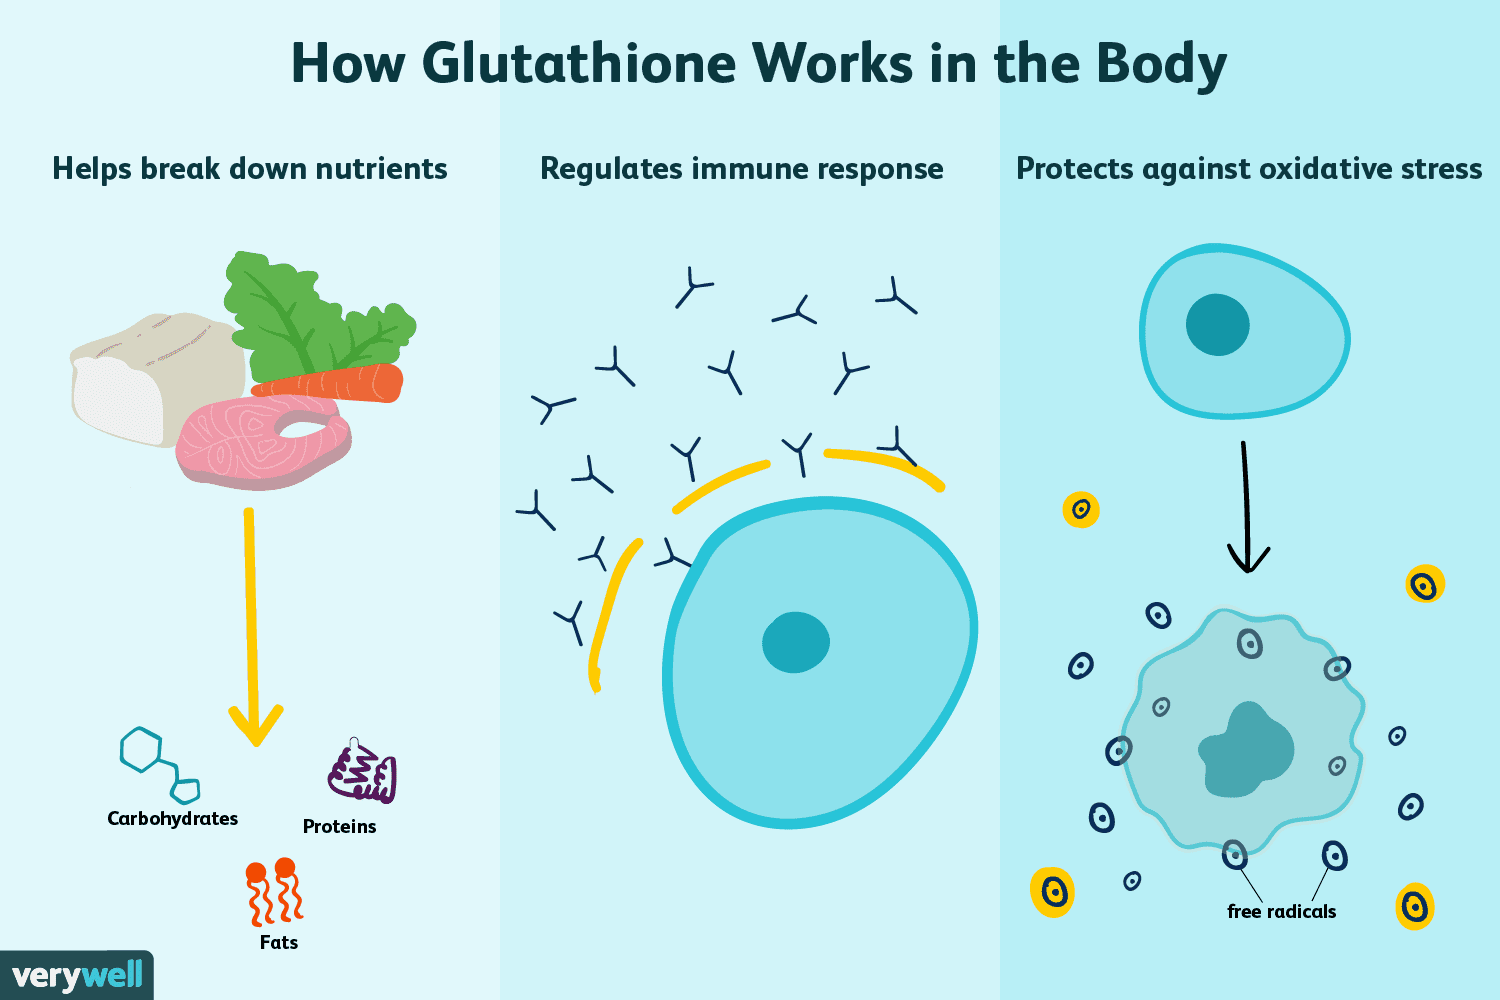 Benefits of Glutathione and Supplements to Raise it